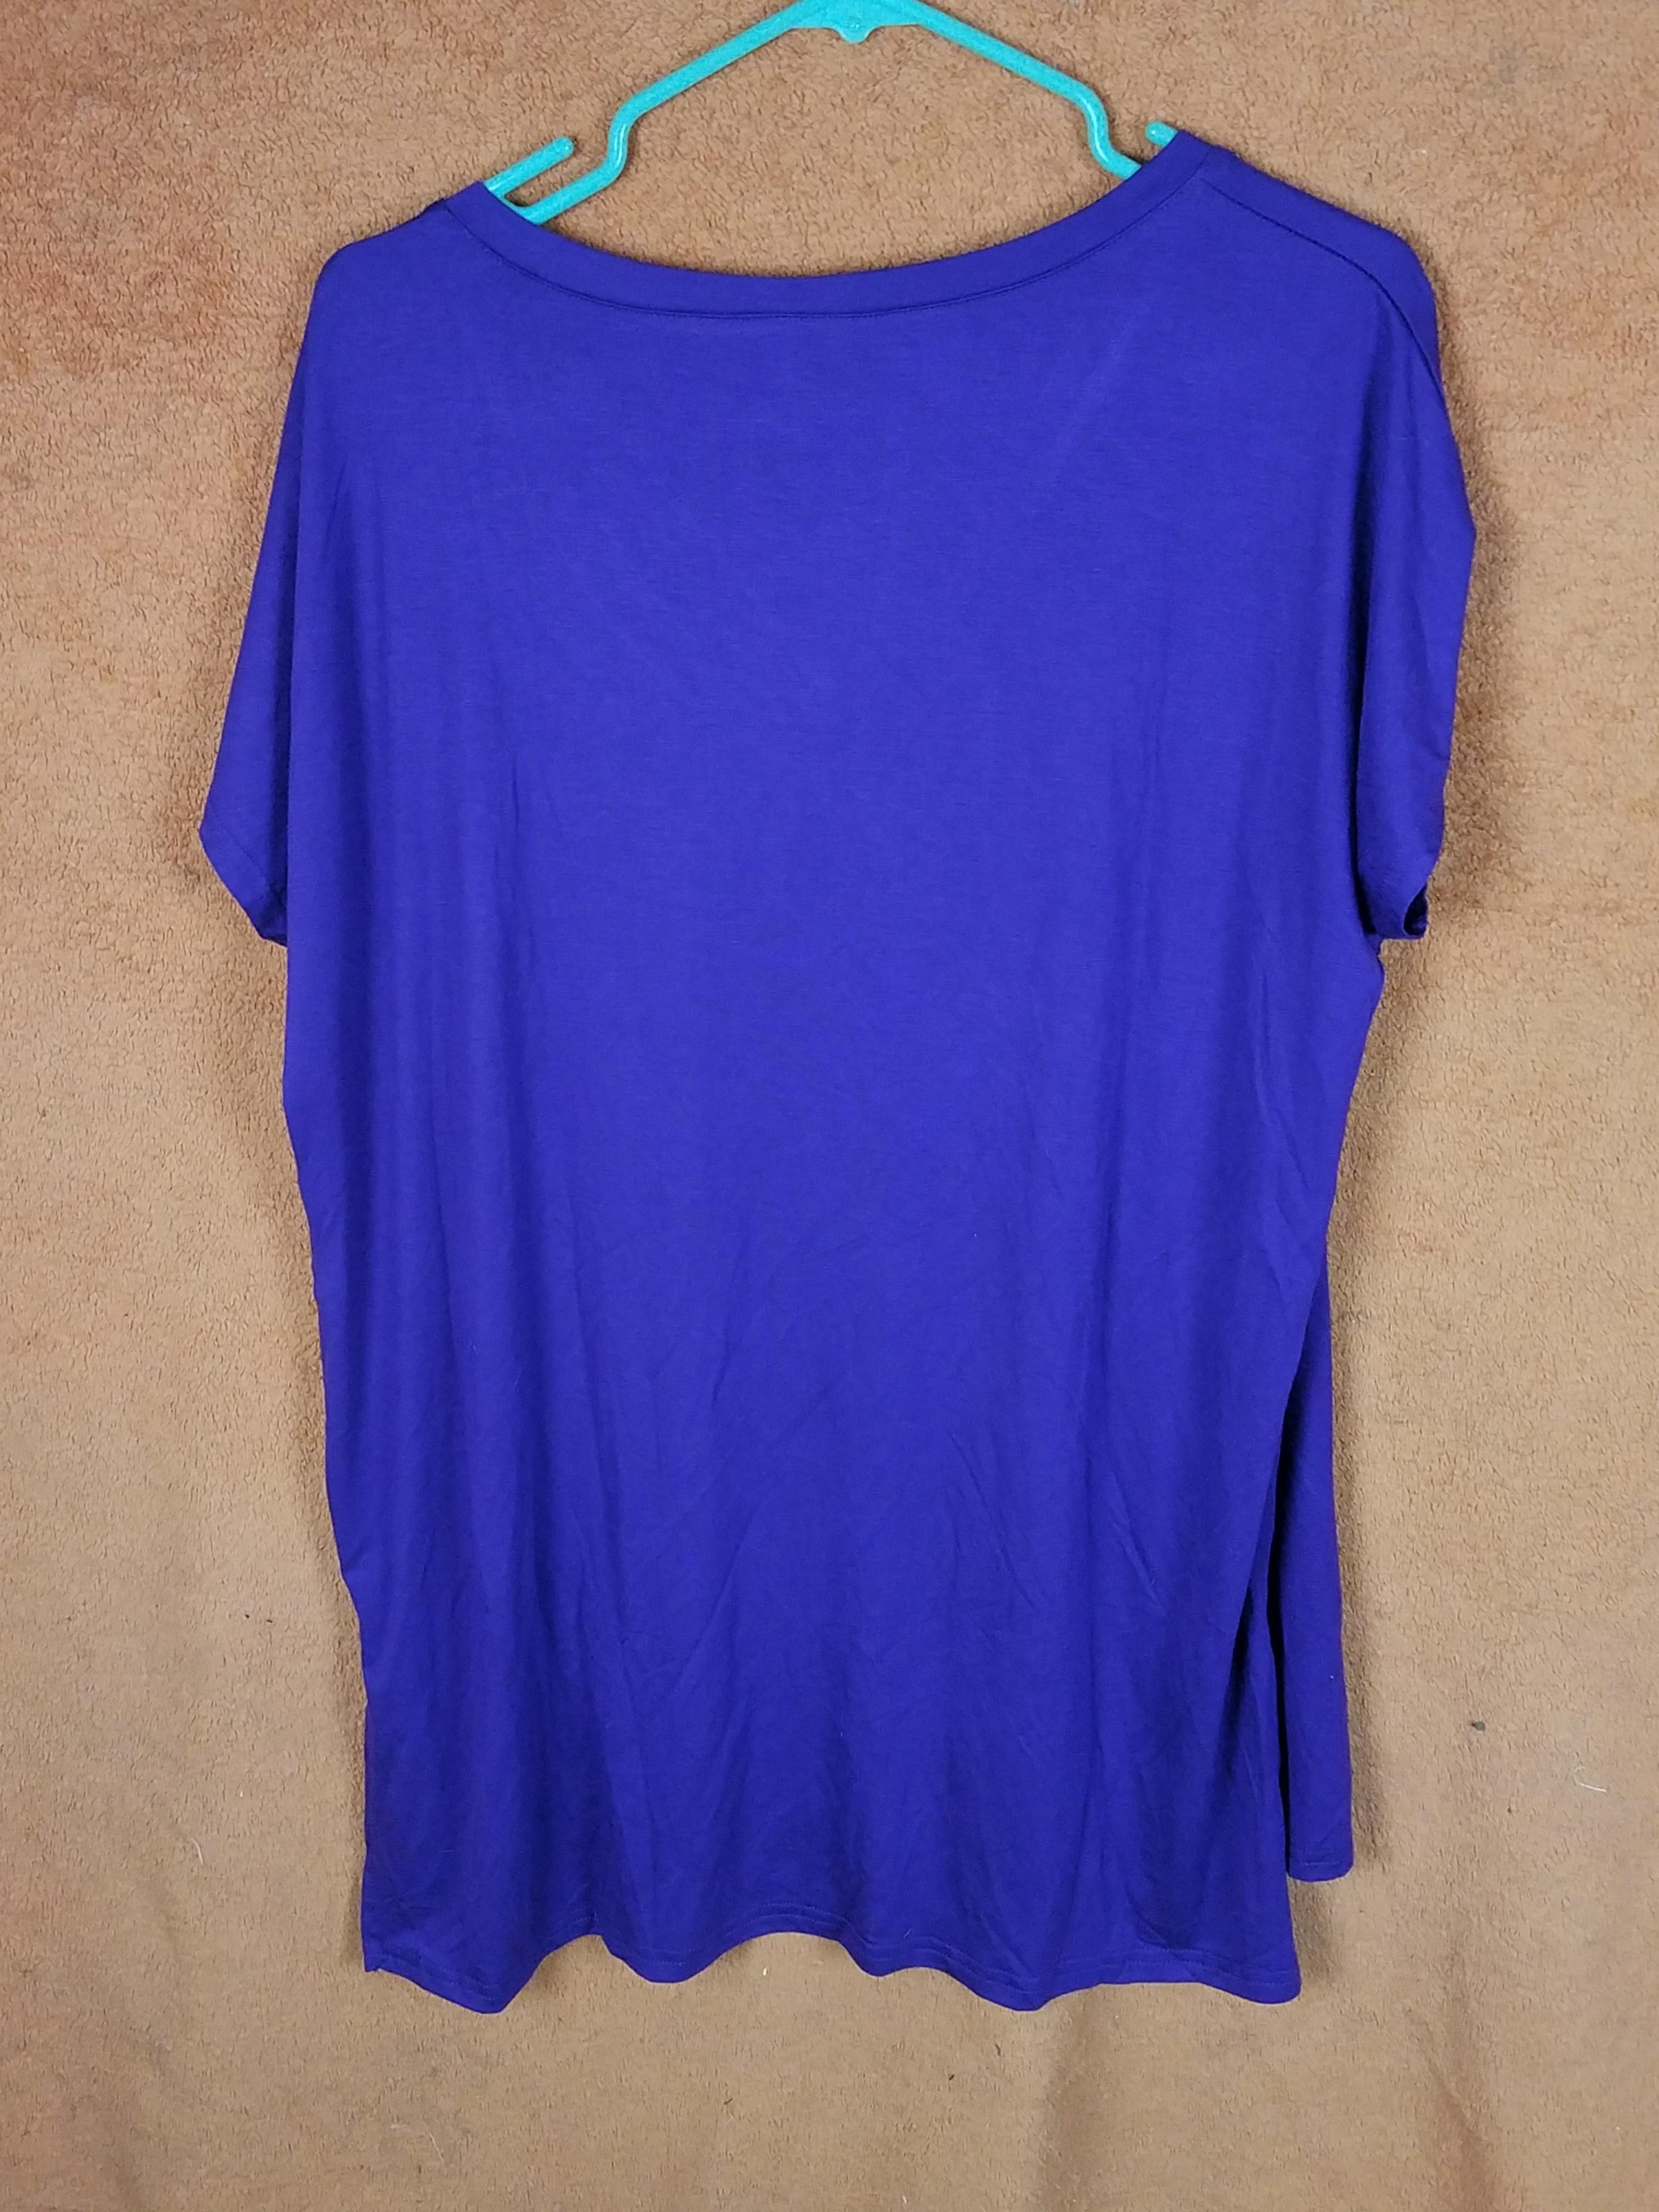 Divine deep shade of purple, cute V-neck, short sleeves, perfect for upcoming Spring & Summer weather, stay cool, comfy, & casual!